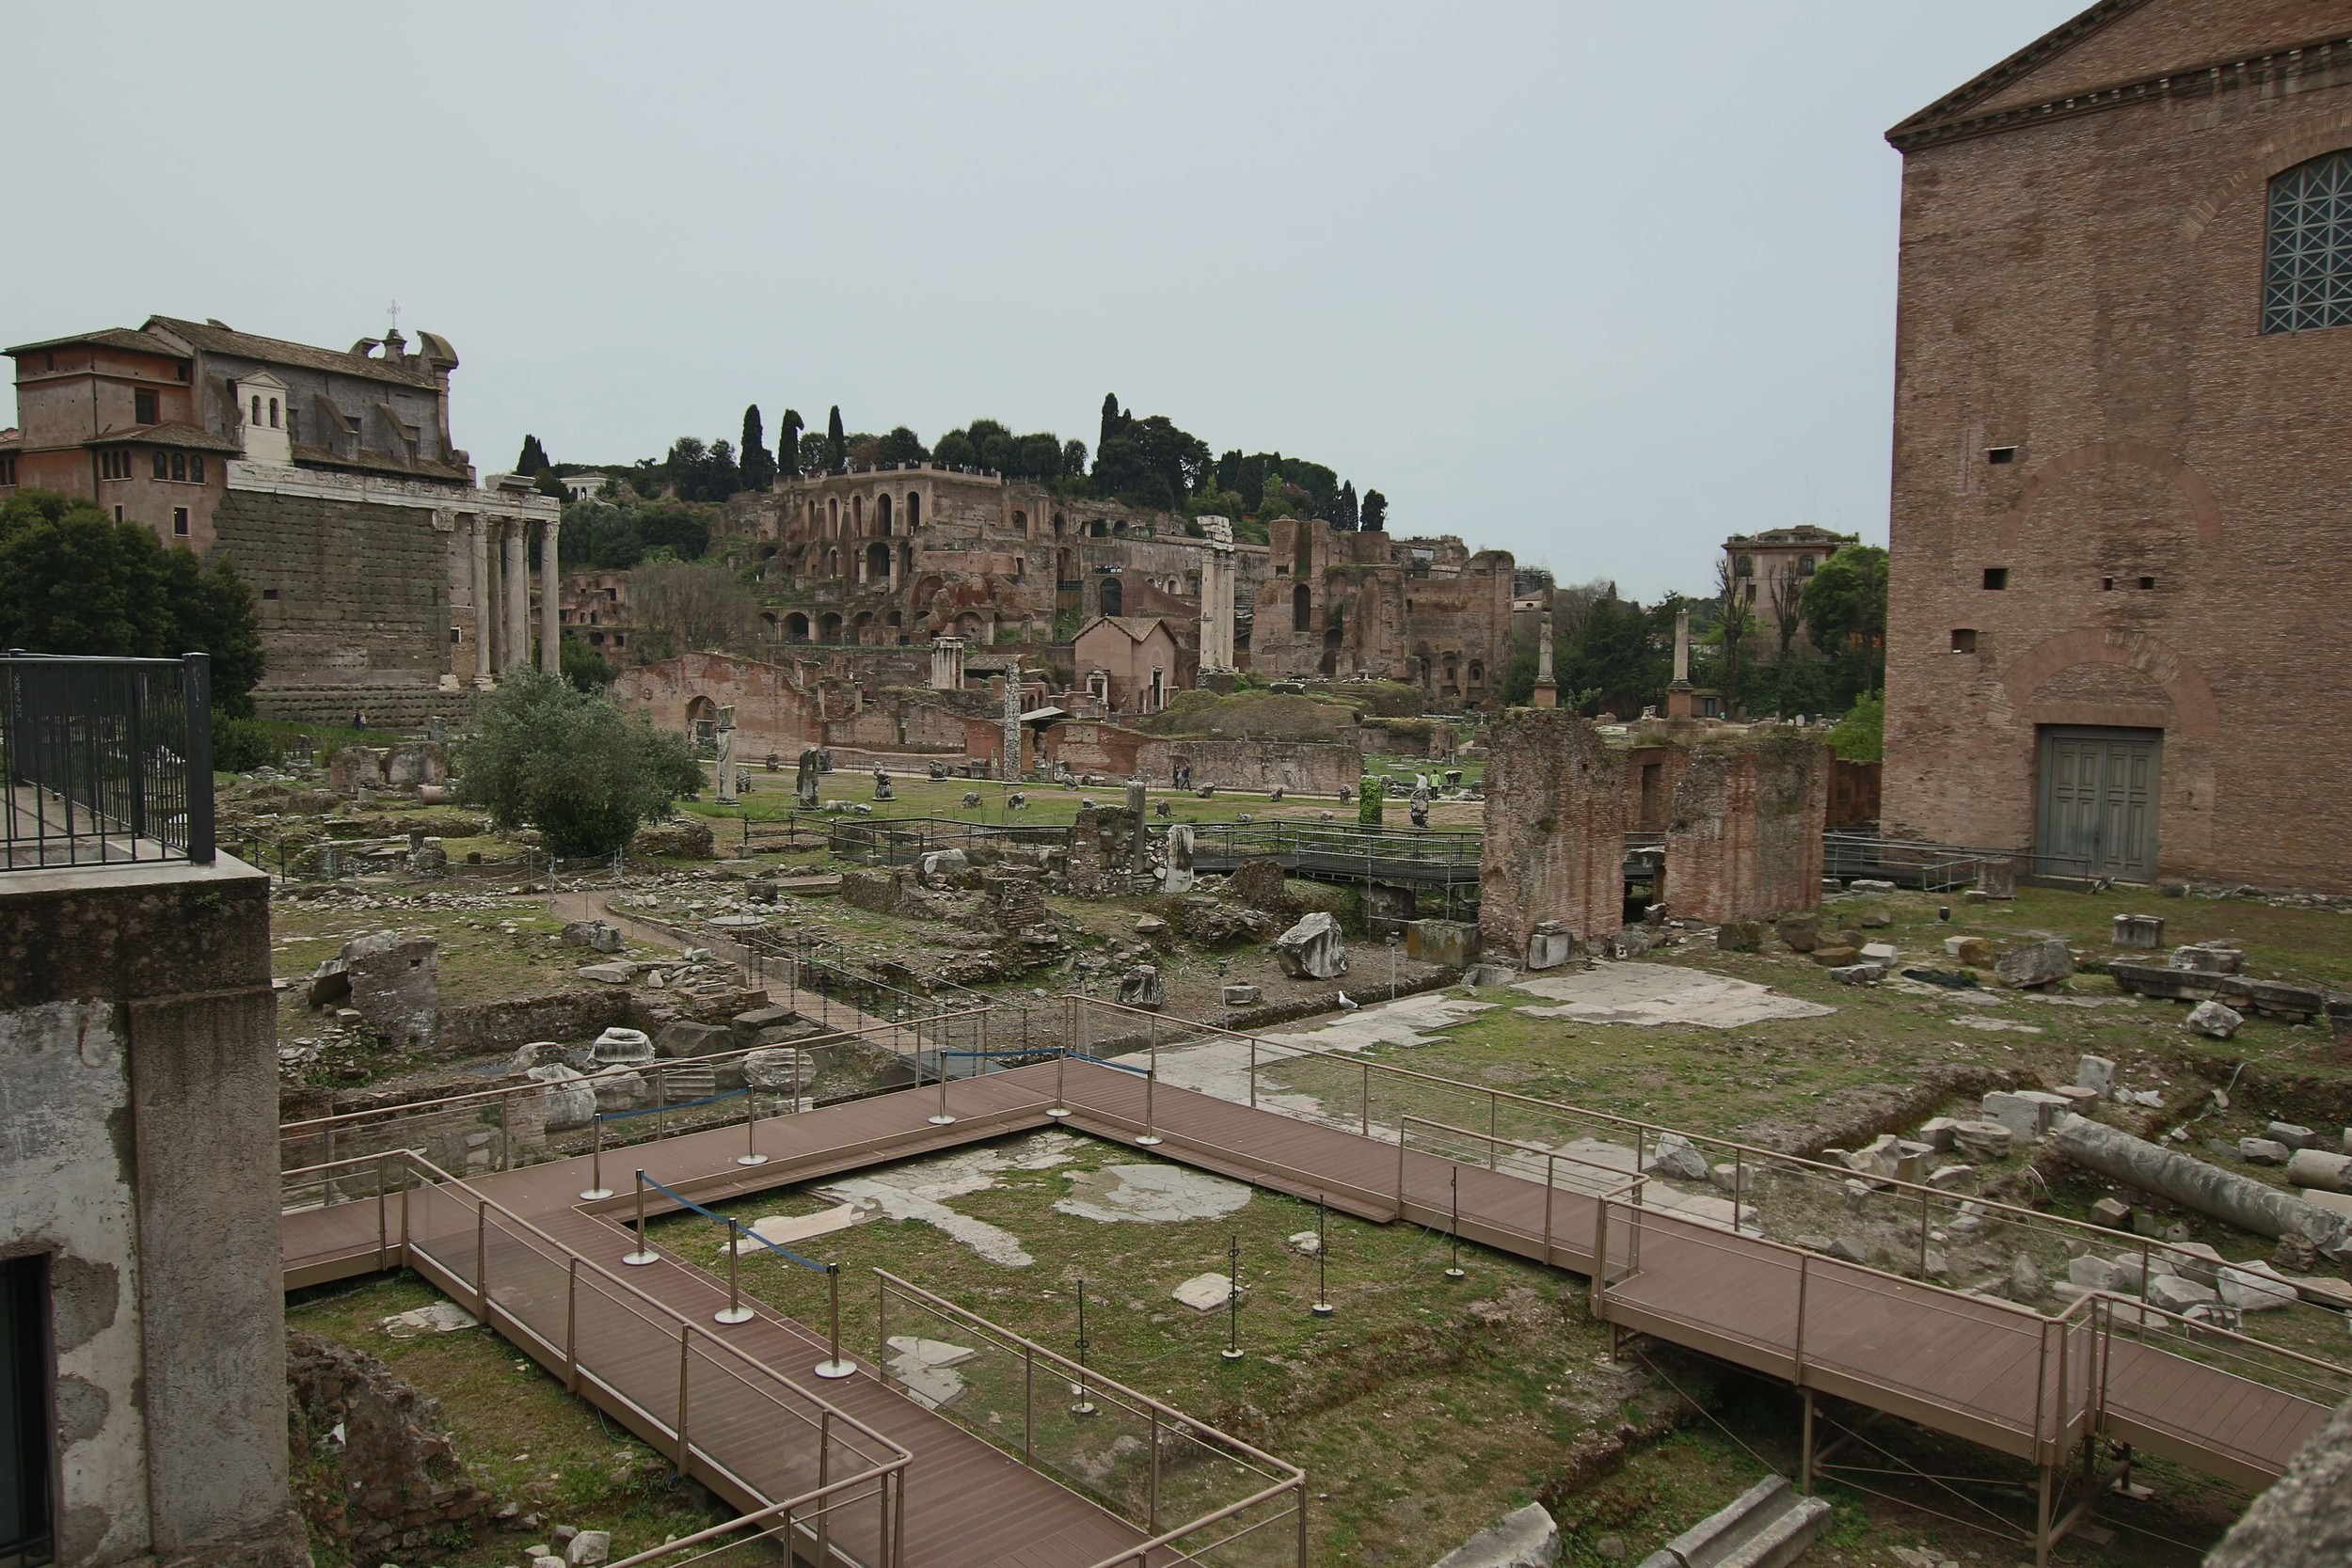 Roman Forum with Palatine hill in the background